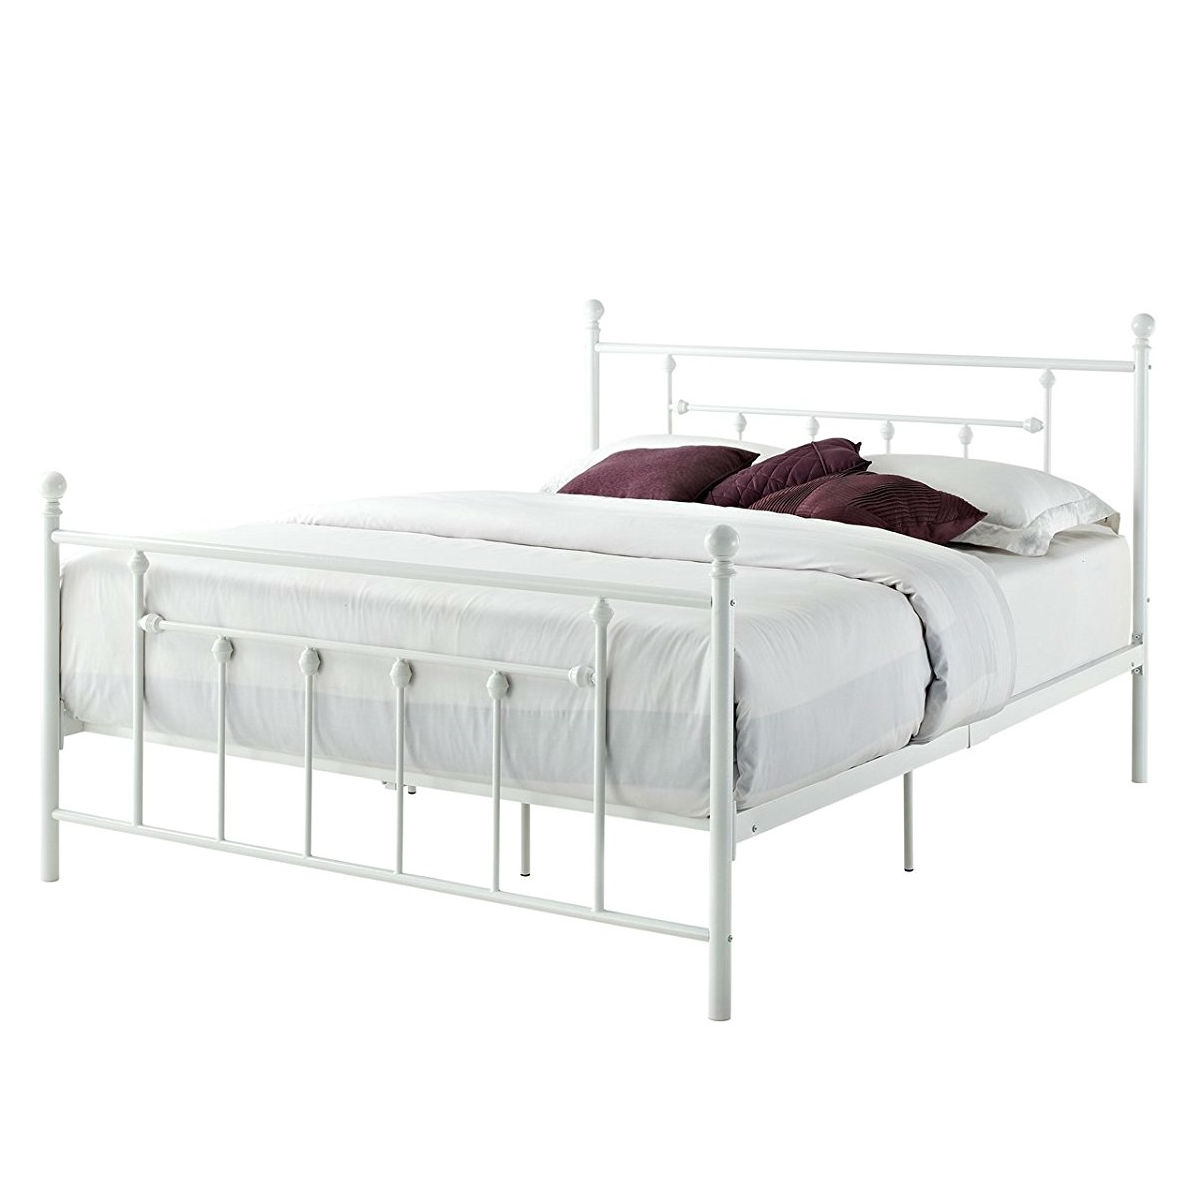 Queen size White Metal Platform Bed Frame with Headboard and